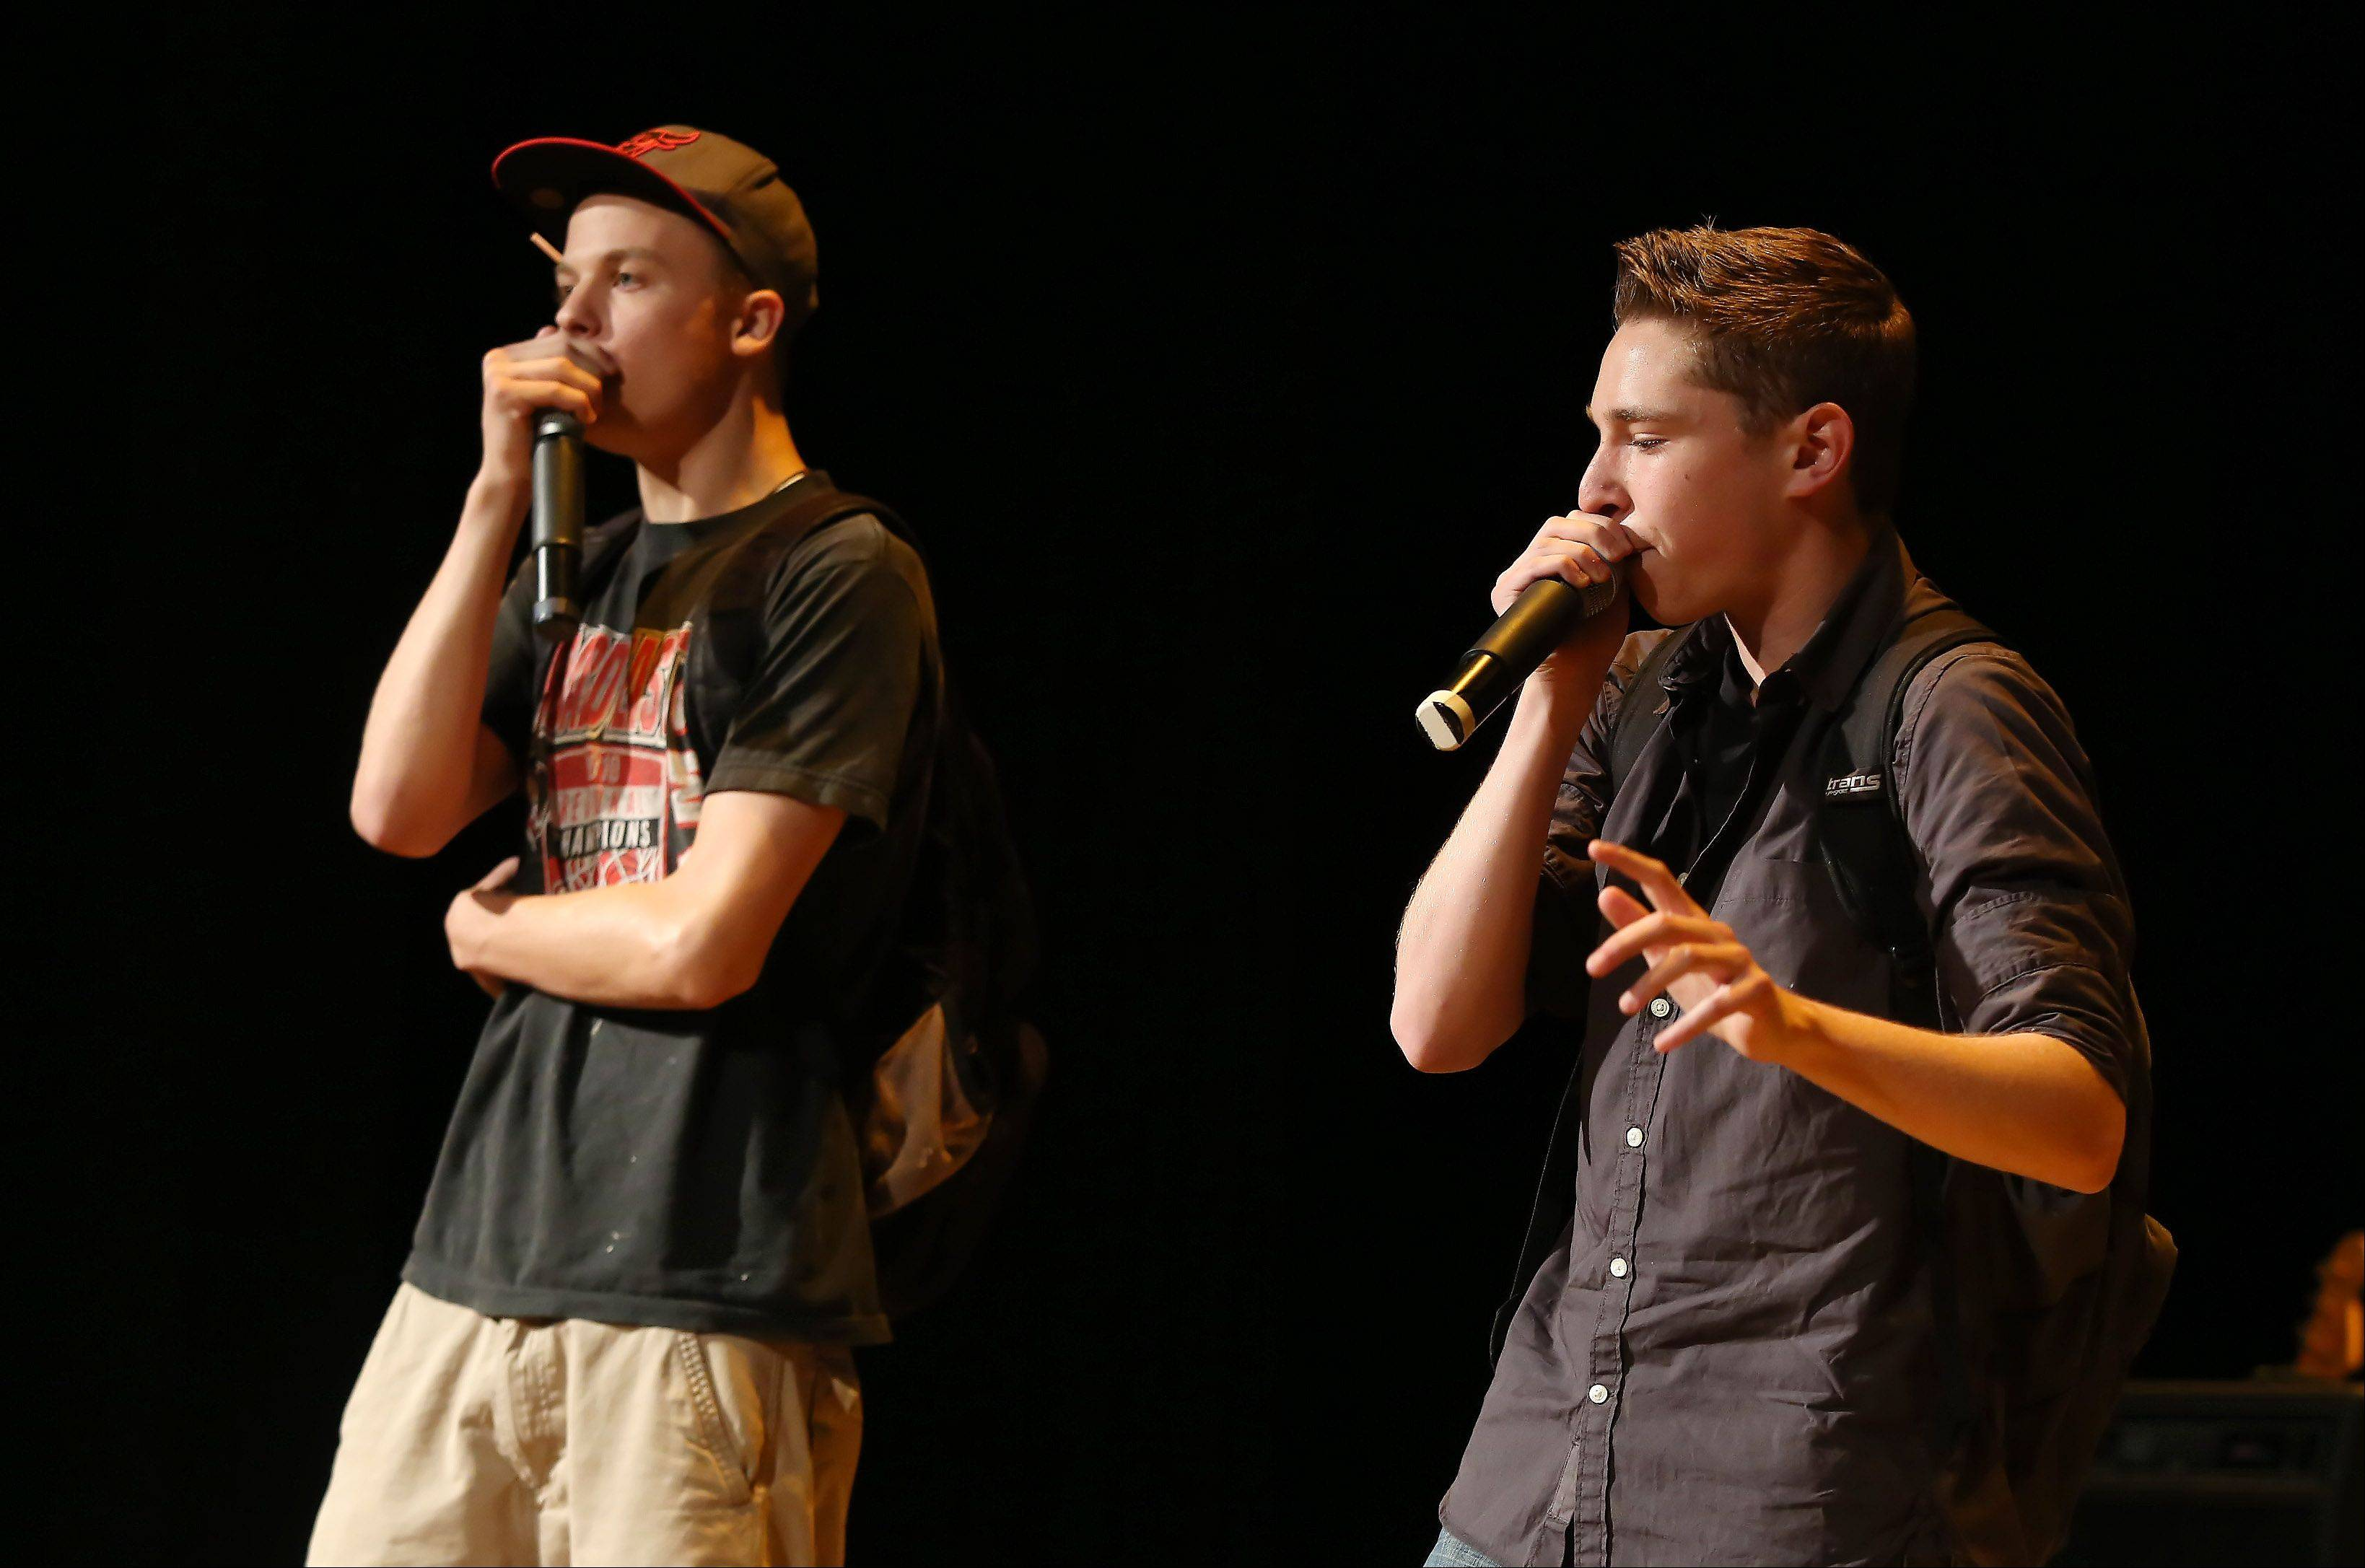 Lombard residents Luke Young, left, and Ronnie Greco of Chinese Take Out perform beatboxing Sunday during the second round of performances by finalists of the Suburban Chicago's Got Talent competition at the Metropolis Performing Arts Centre in Arlington Heights. The summer long talent contest is presented by the Daily Herald and sponsored by the Arlington Heights Chamber of Commerce.